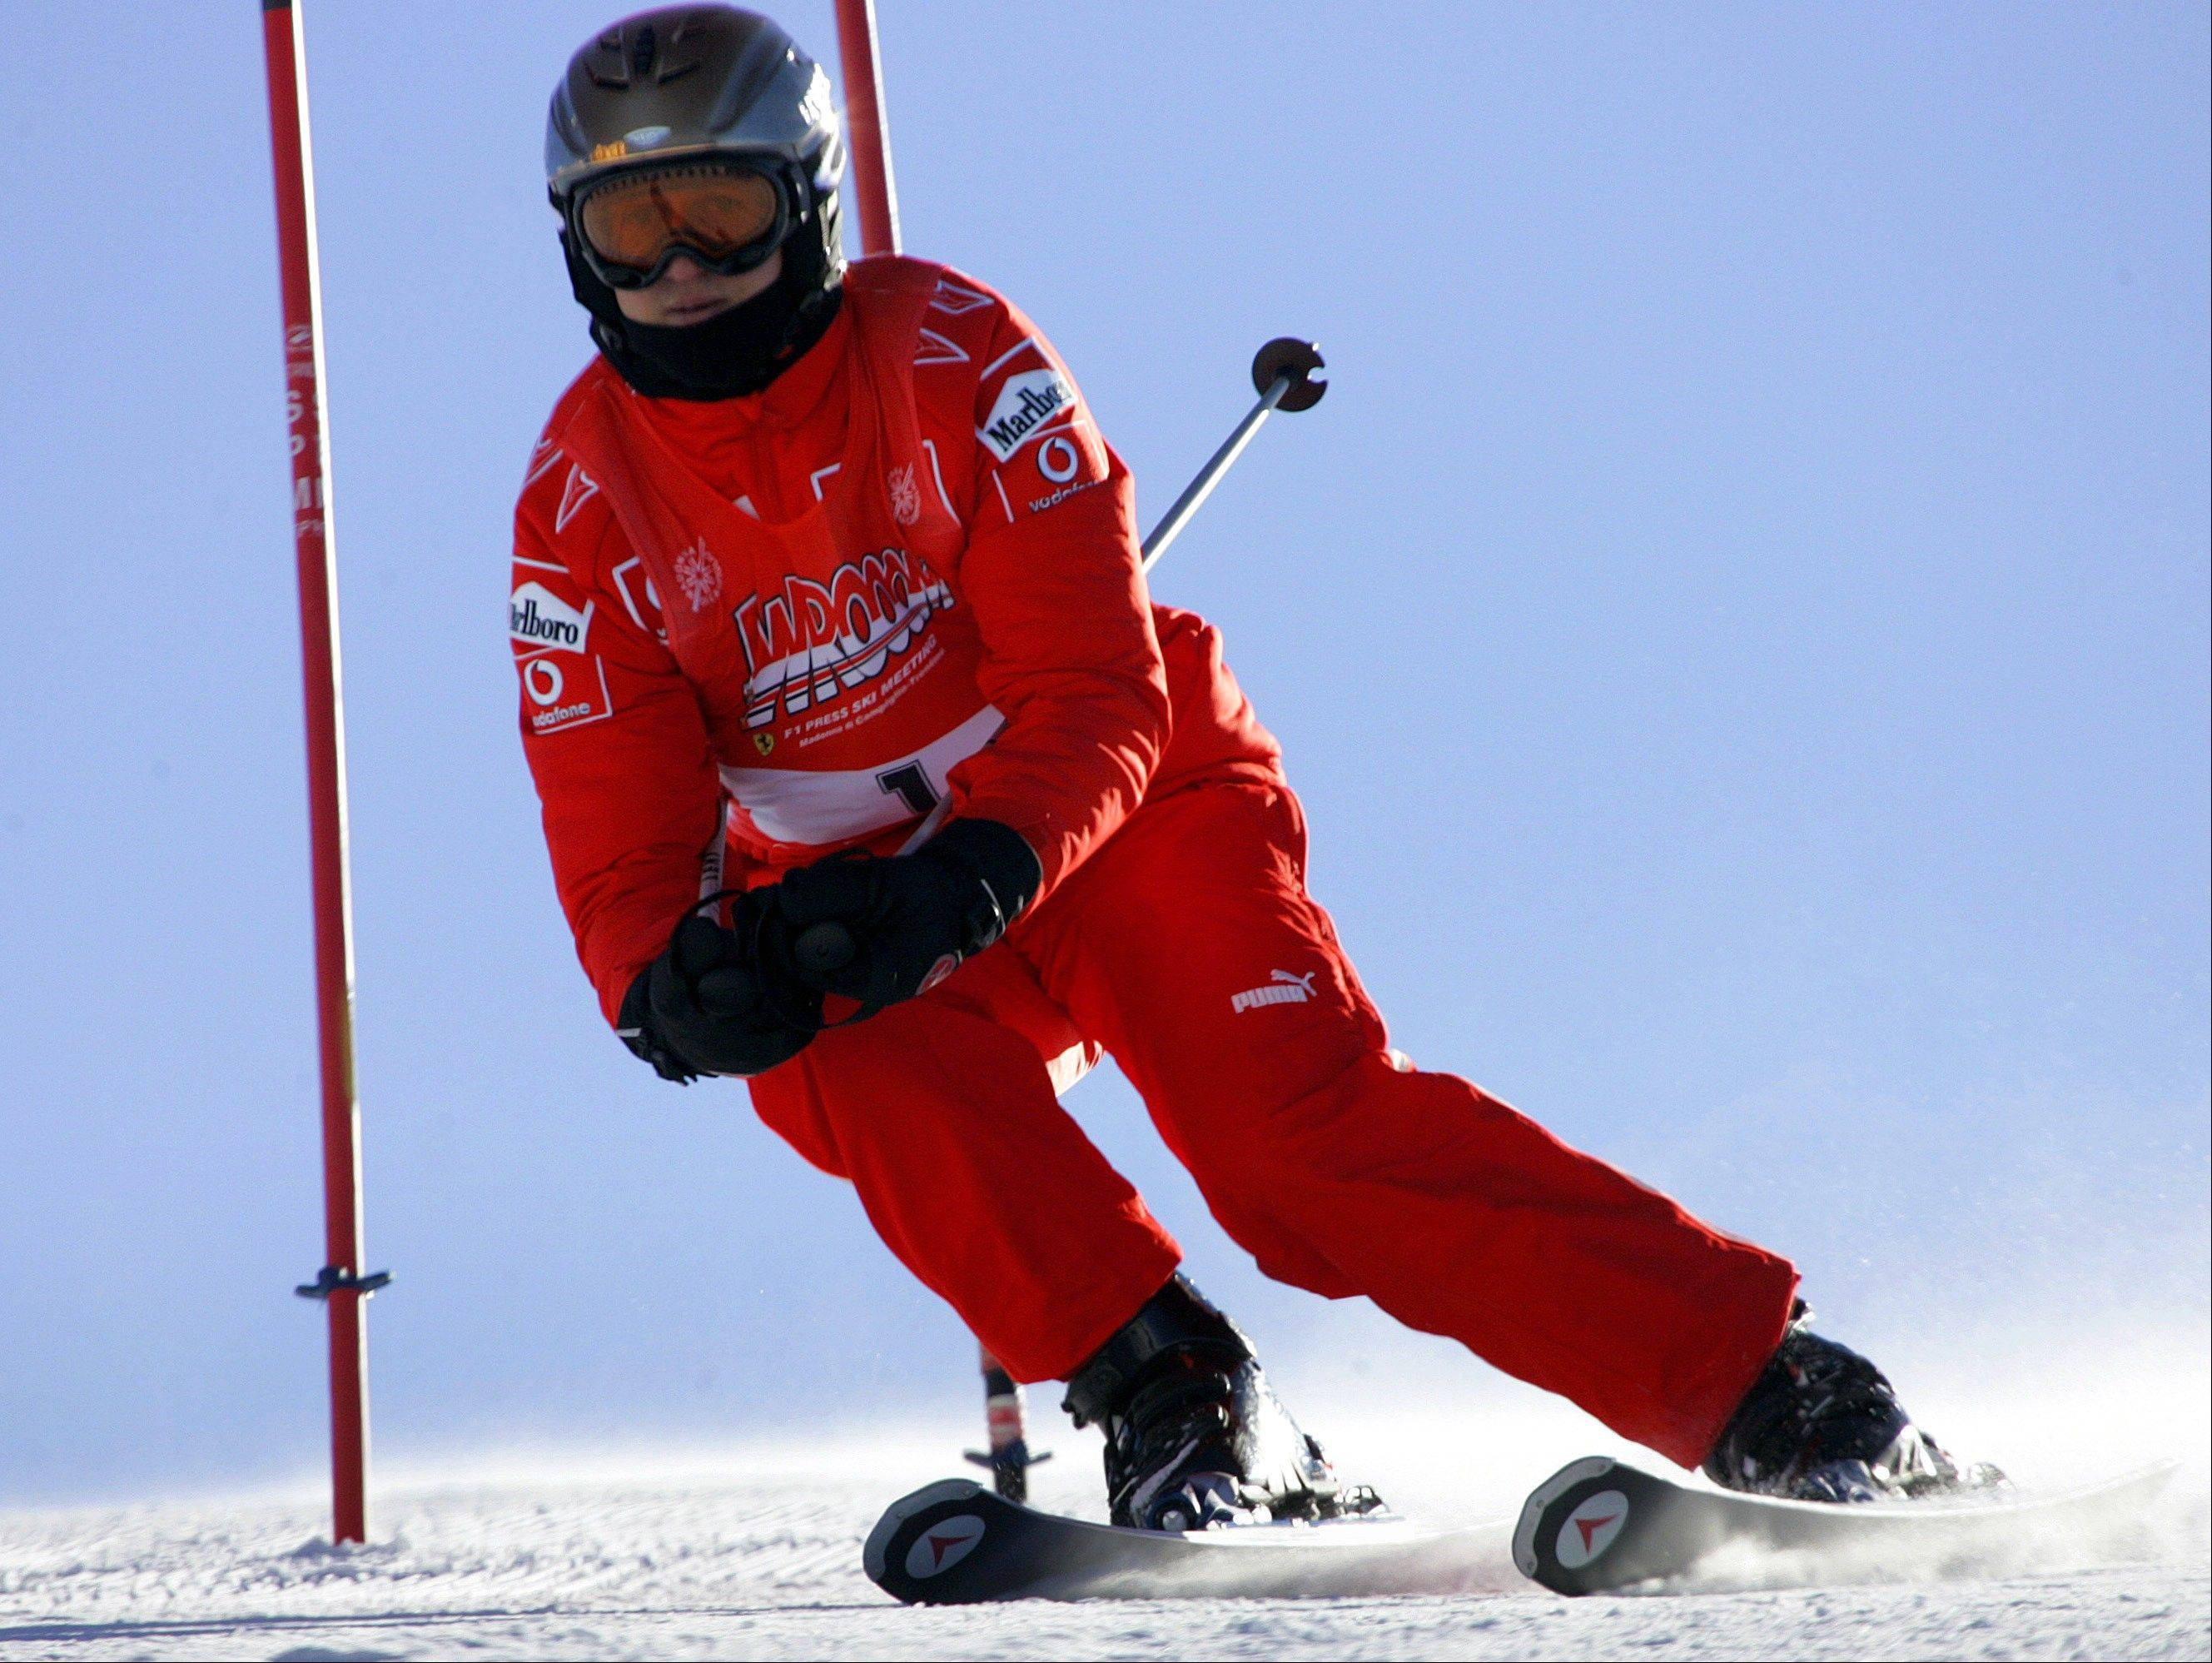 Two minutes of footage from a camera on Michael Schumacher�s ski helmet showed the Formula One great was clearly skiing off a groomed trail when he lost his balance and crashed, leaving him with critical head injuries, investigators said Wednesday Jan. 8, 2014.